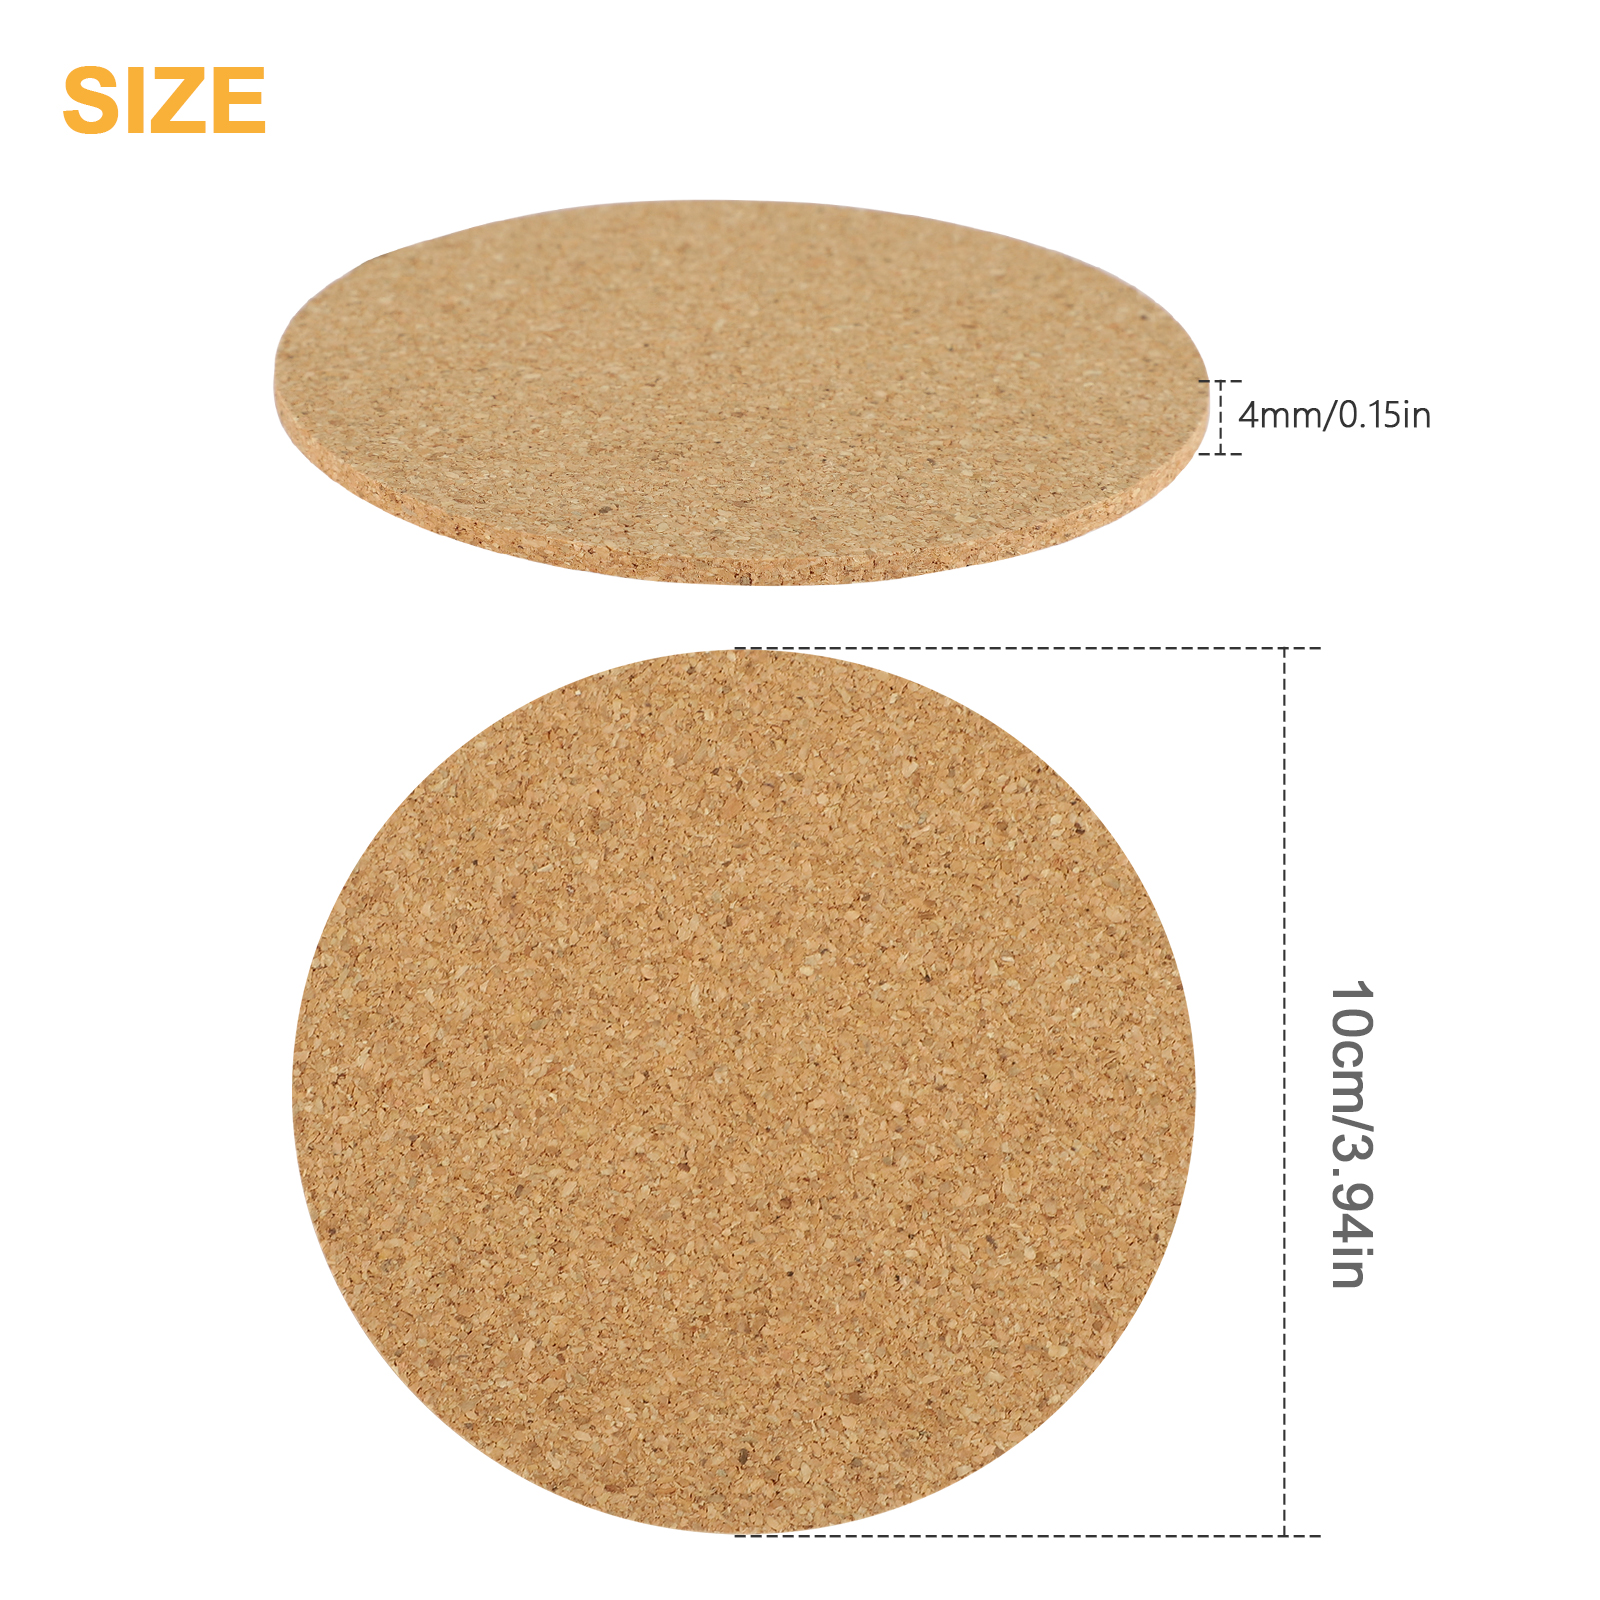 8-16pcs-Cork-Drink-Coasters-Tea-Coffee-Absorbent-Round-Cup-Mat-Table-Decor-Home thumbnail 7